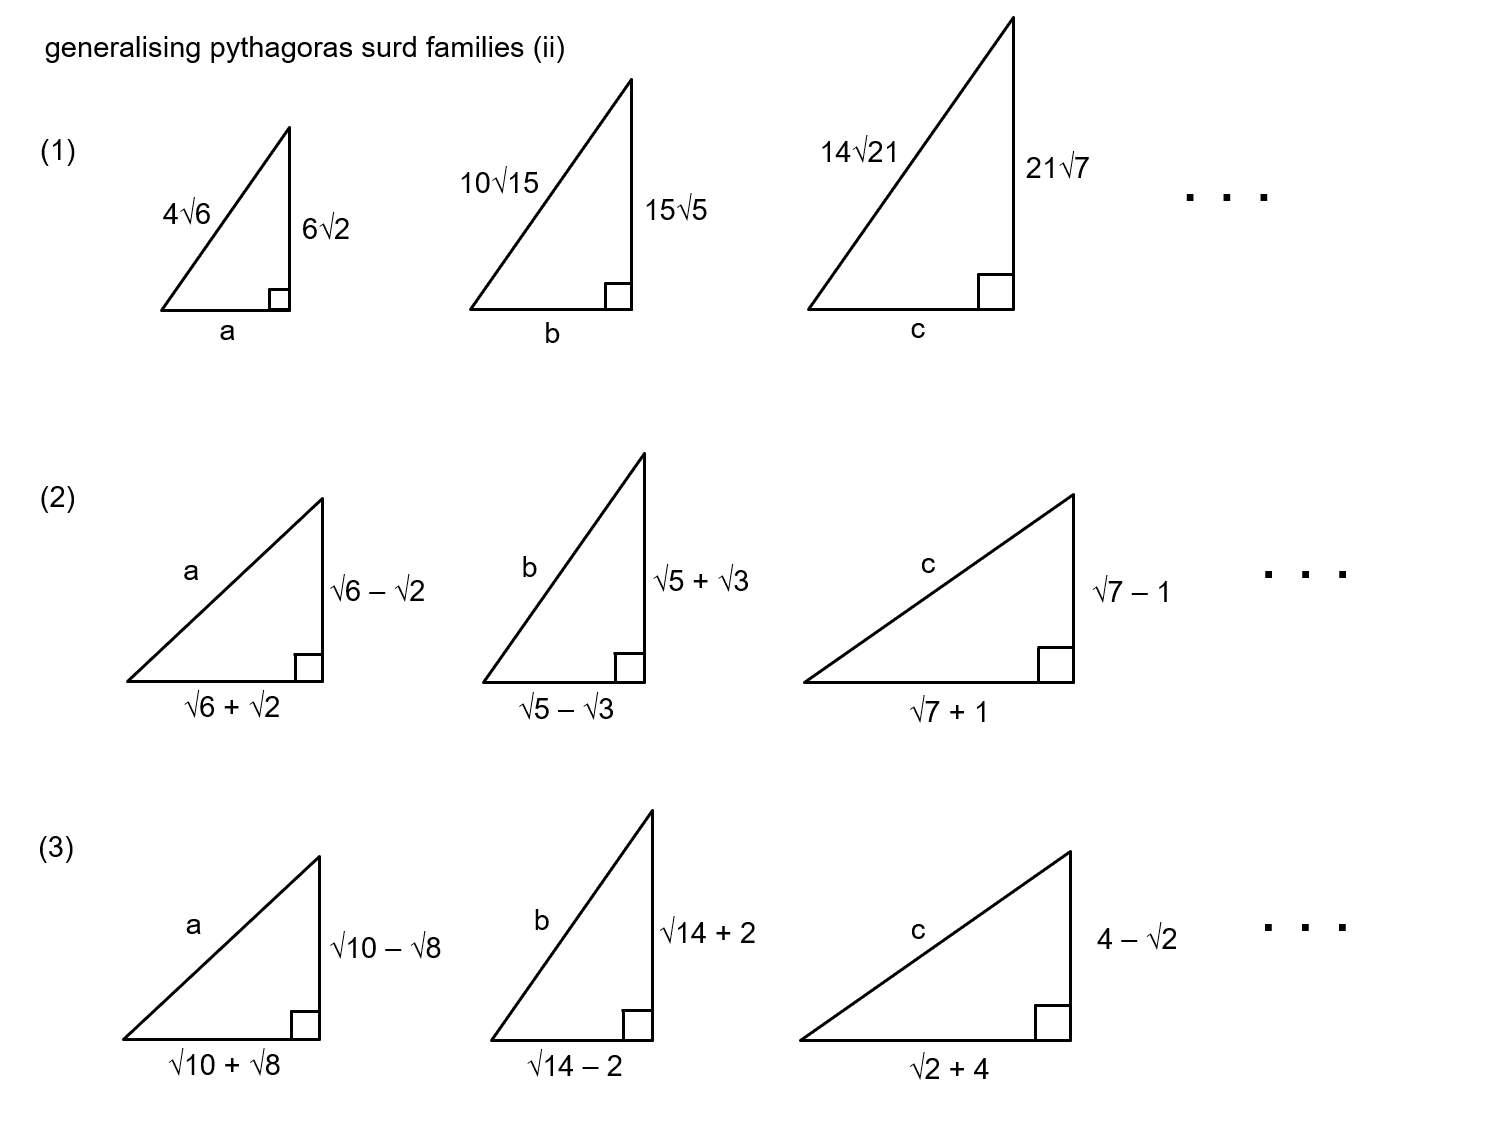 Pythagorean Theorem Algebra 1 Worksheet